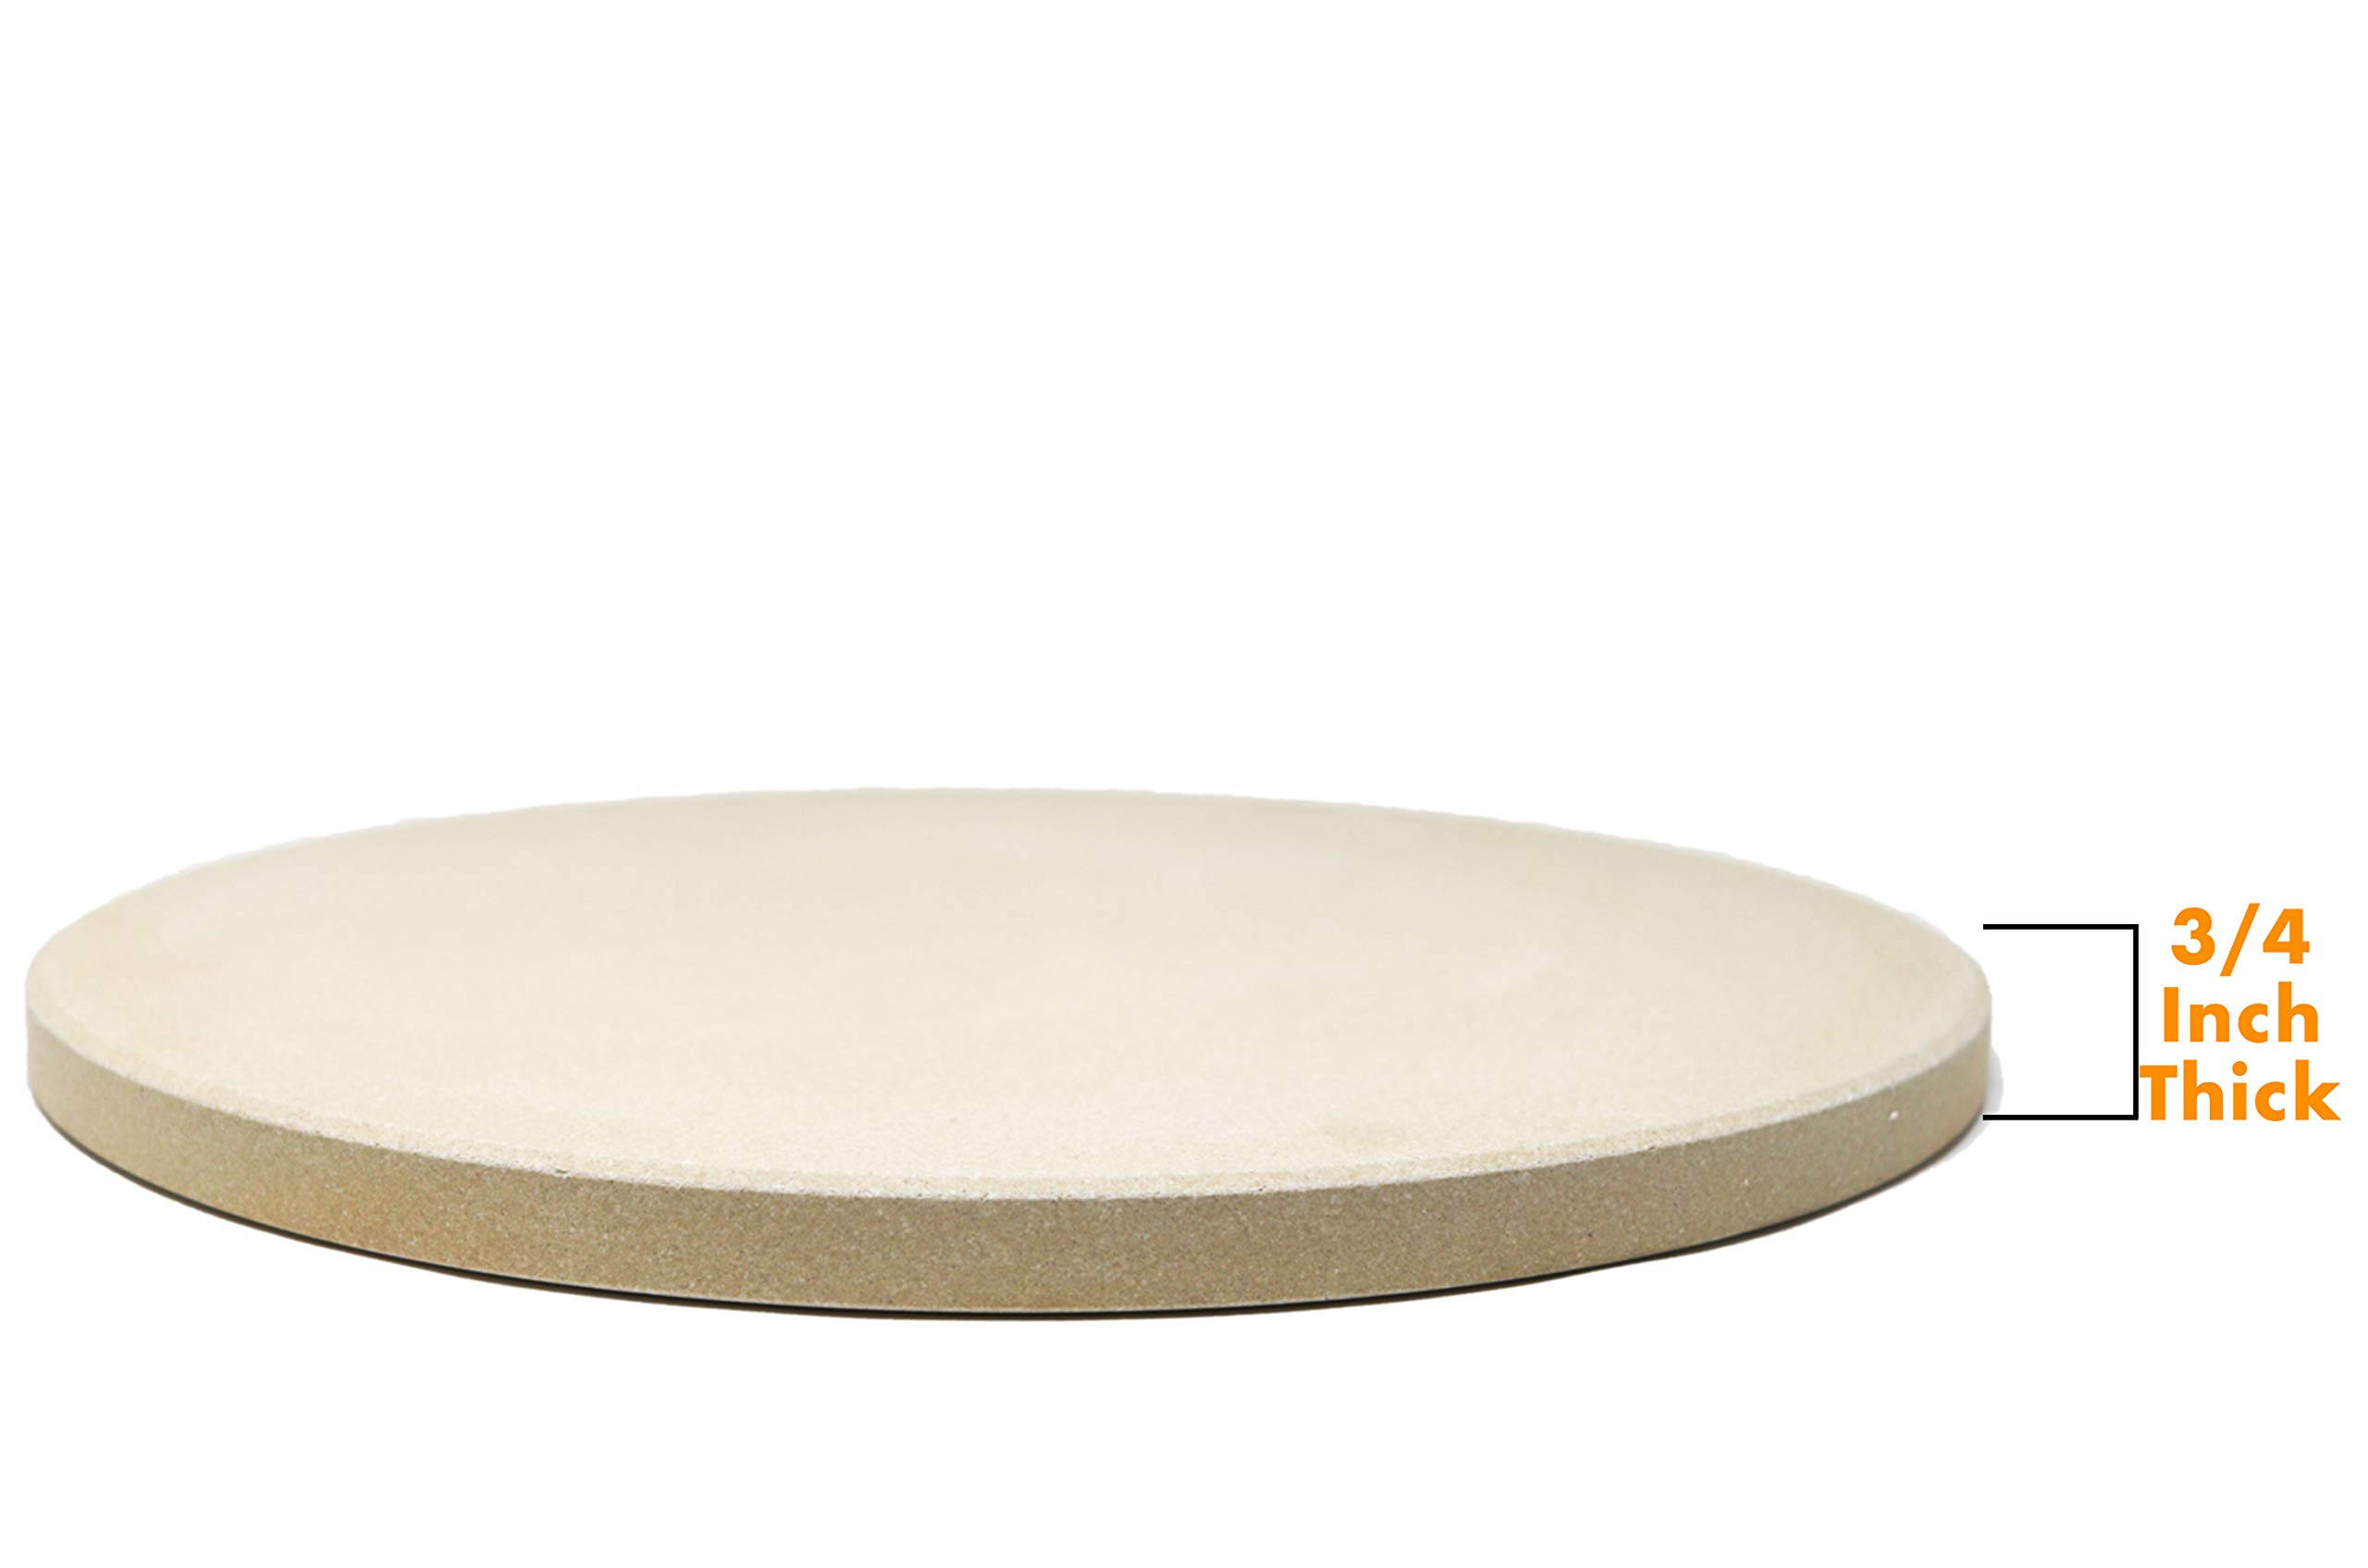 Aura Outdoor Products Extra Thick Pizza Stone - Perfect Crusts and Improved Heat Deflection